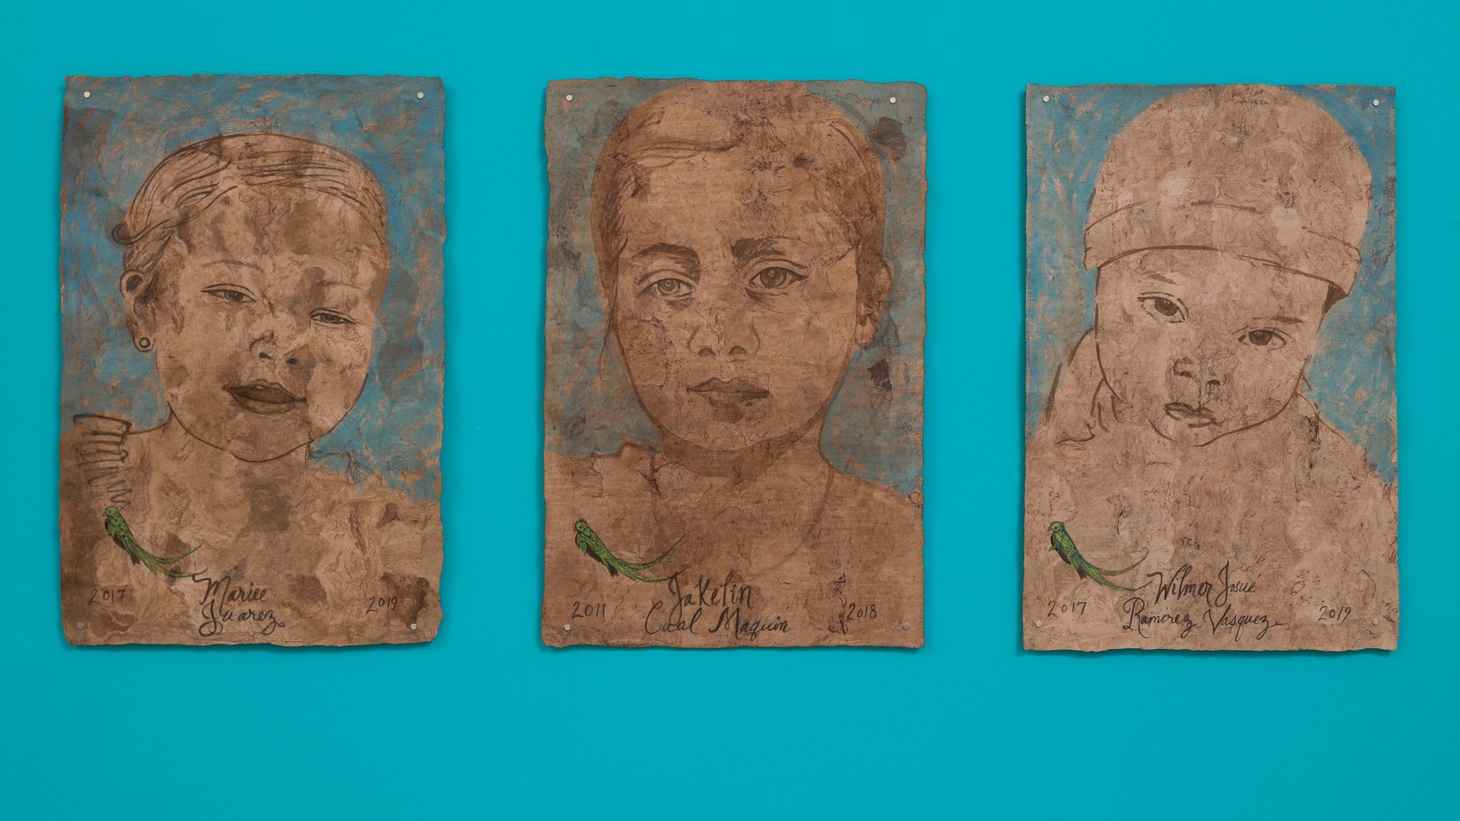 Portraits by Sandy Rodriguez at Charlie James Gallery. Image courtesy of the artist and Charlie James Gallery.